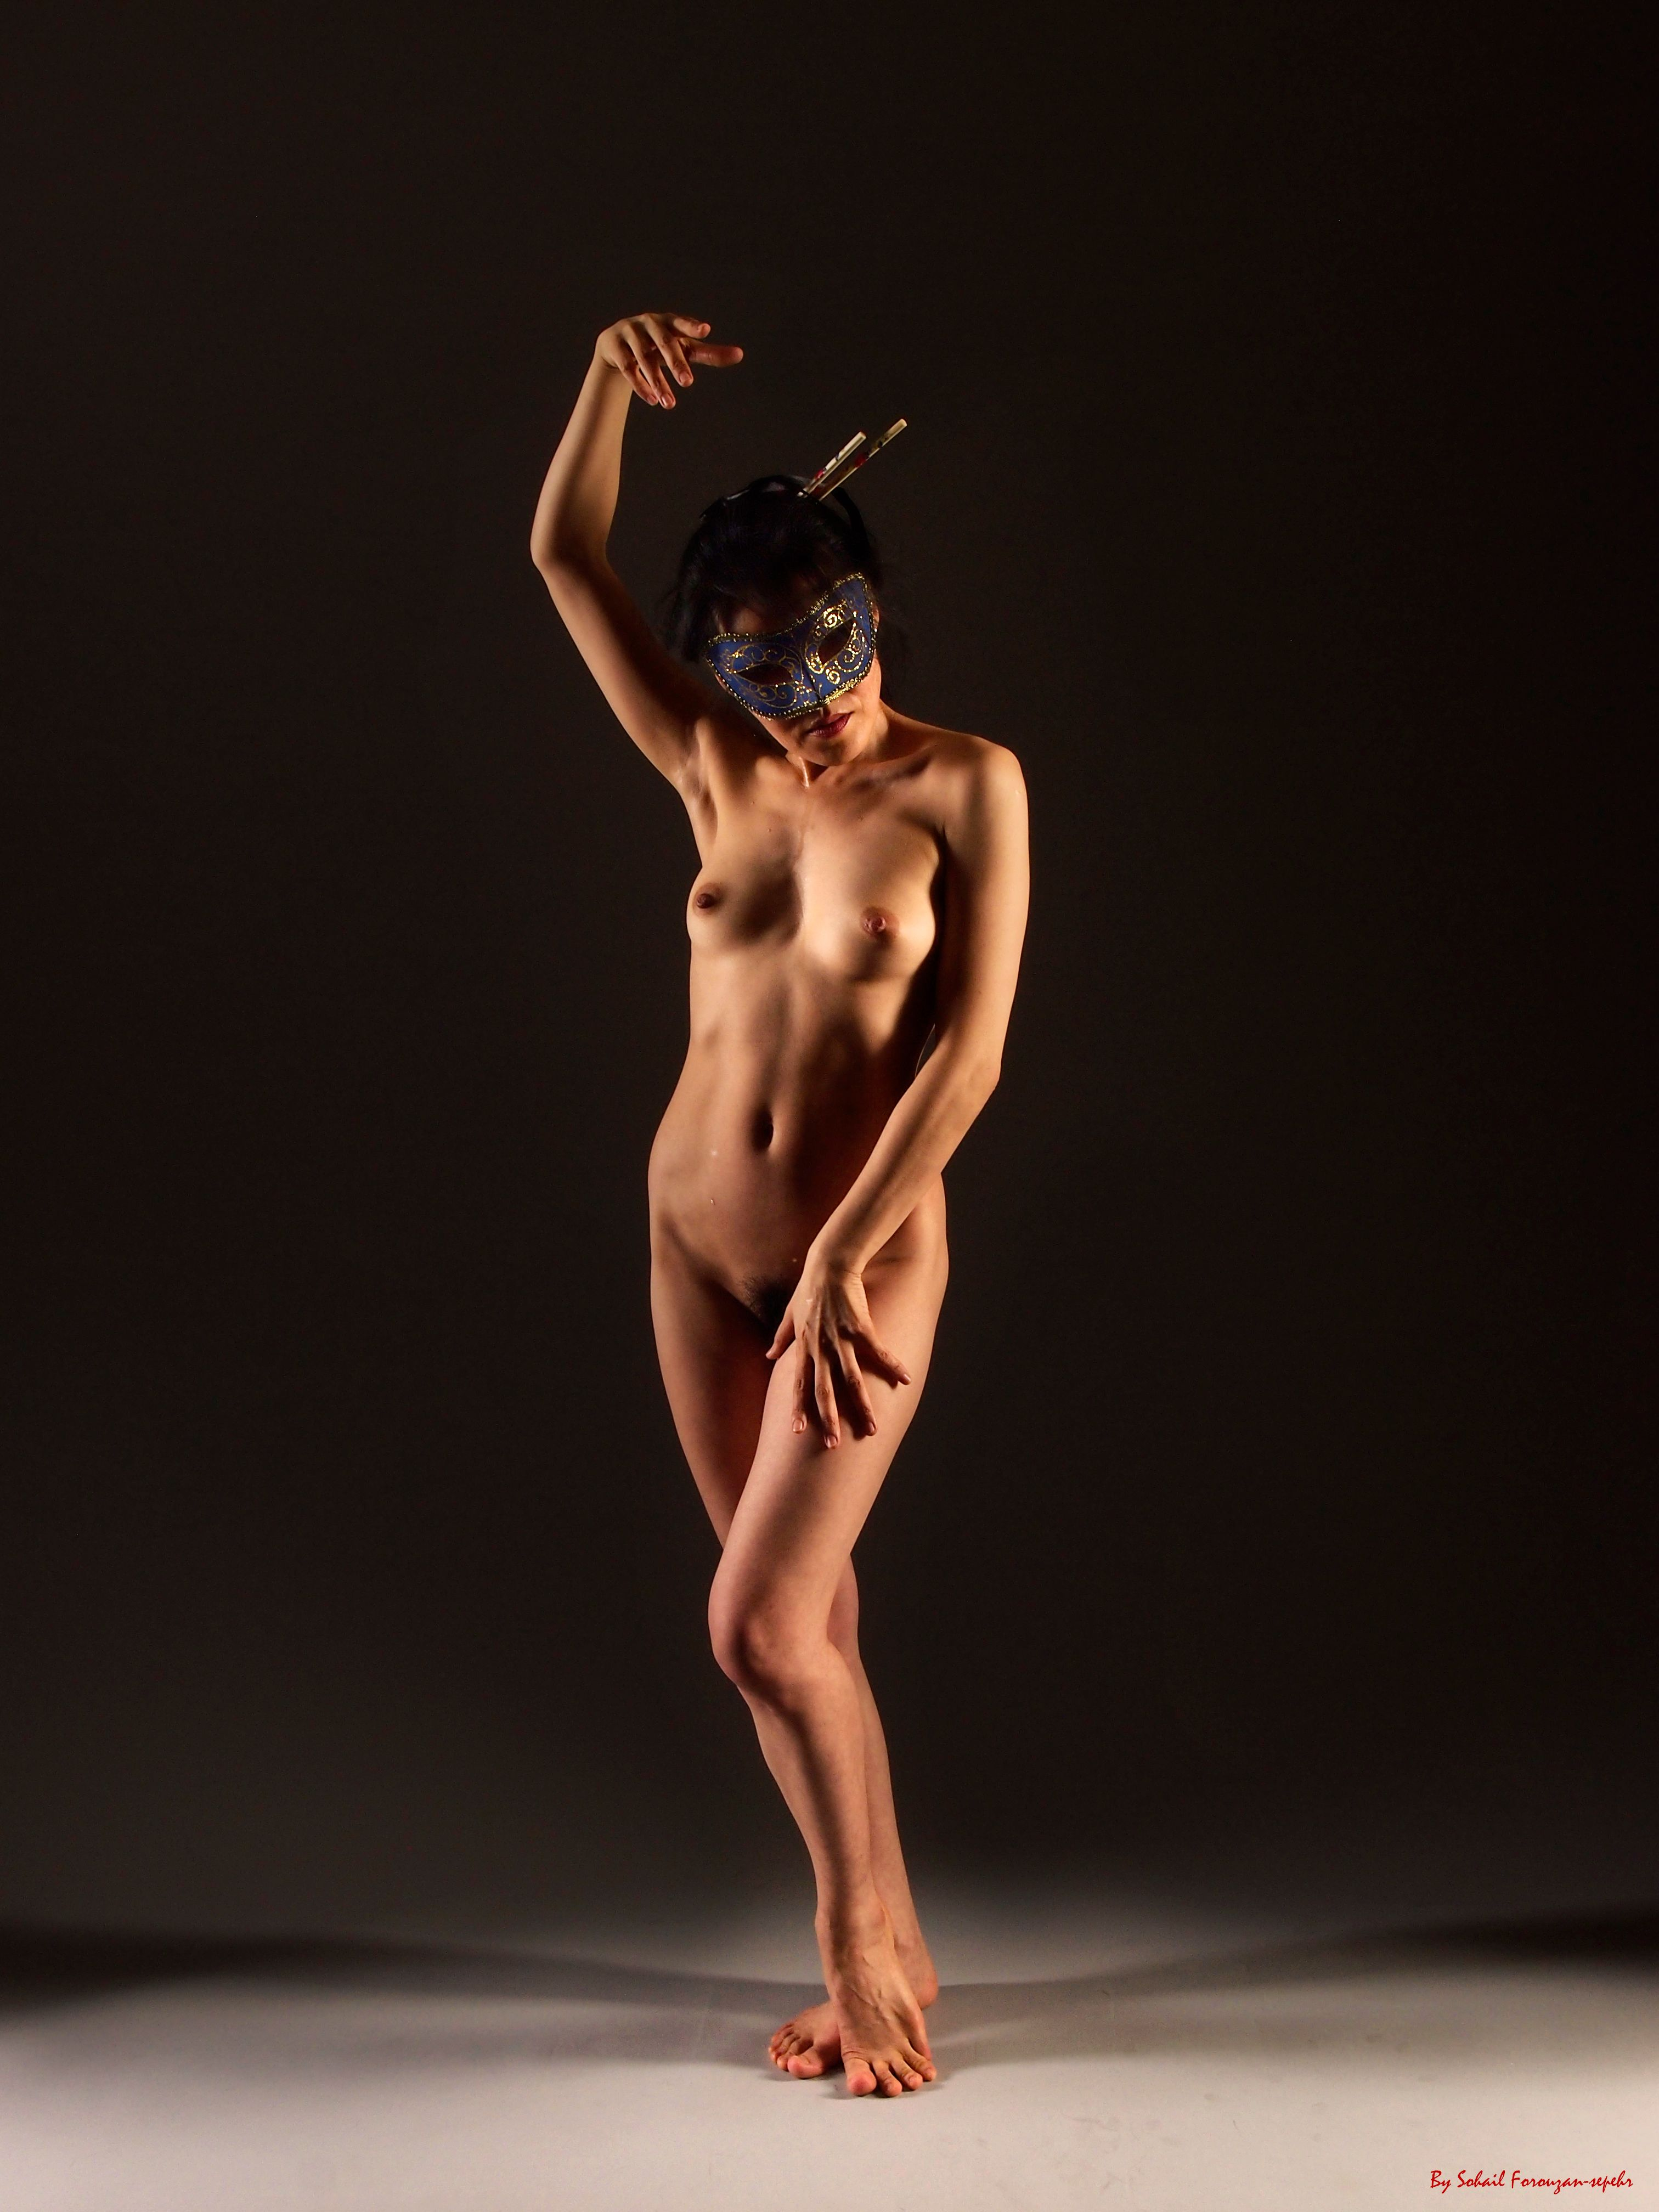 wiltshire in nude workshops photography swindon